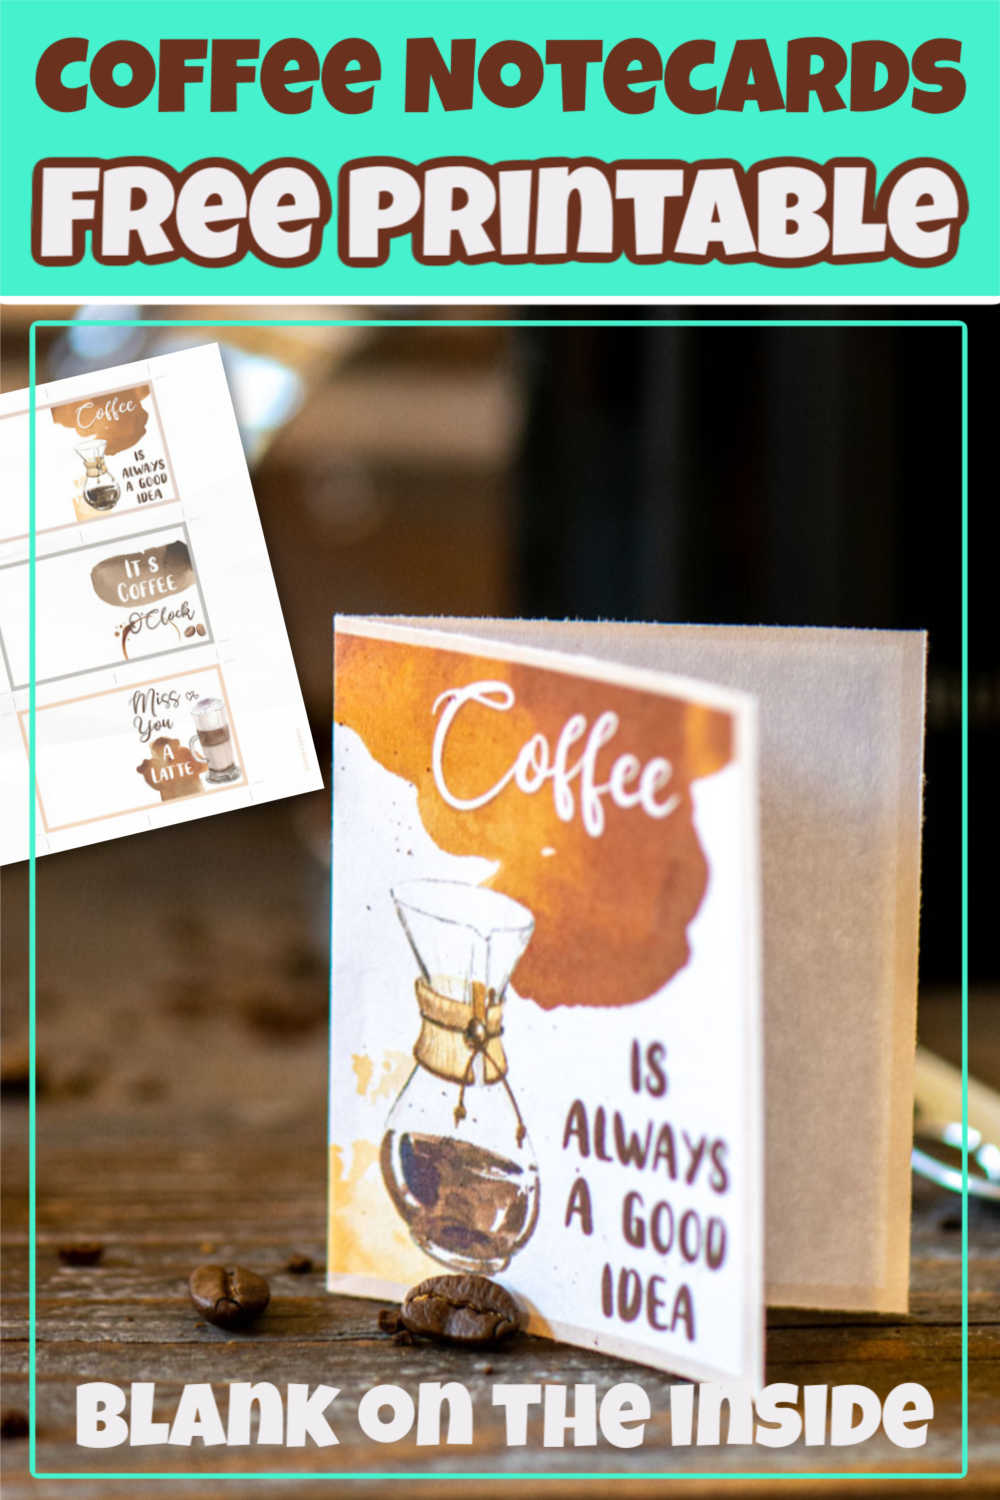 Meaningful Ways to Share! Free ☕ Coffee Notecards - Printable Cards